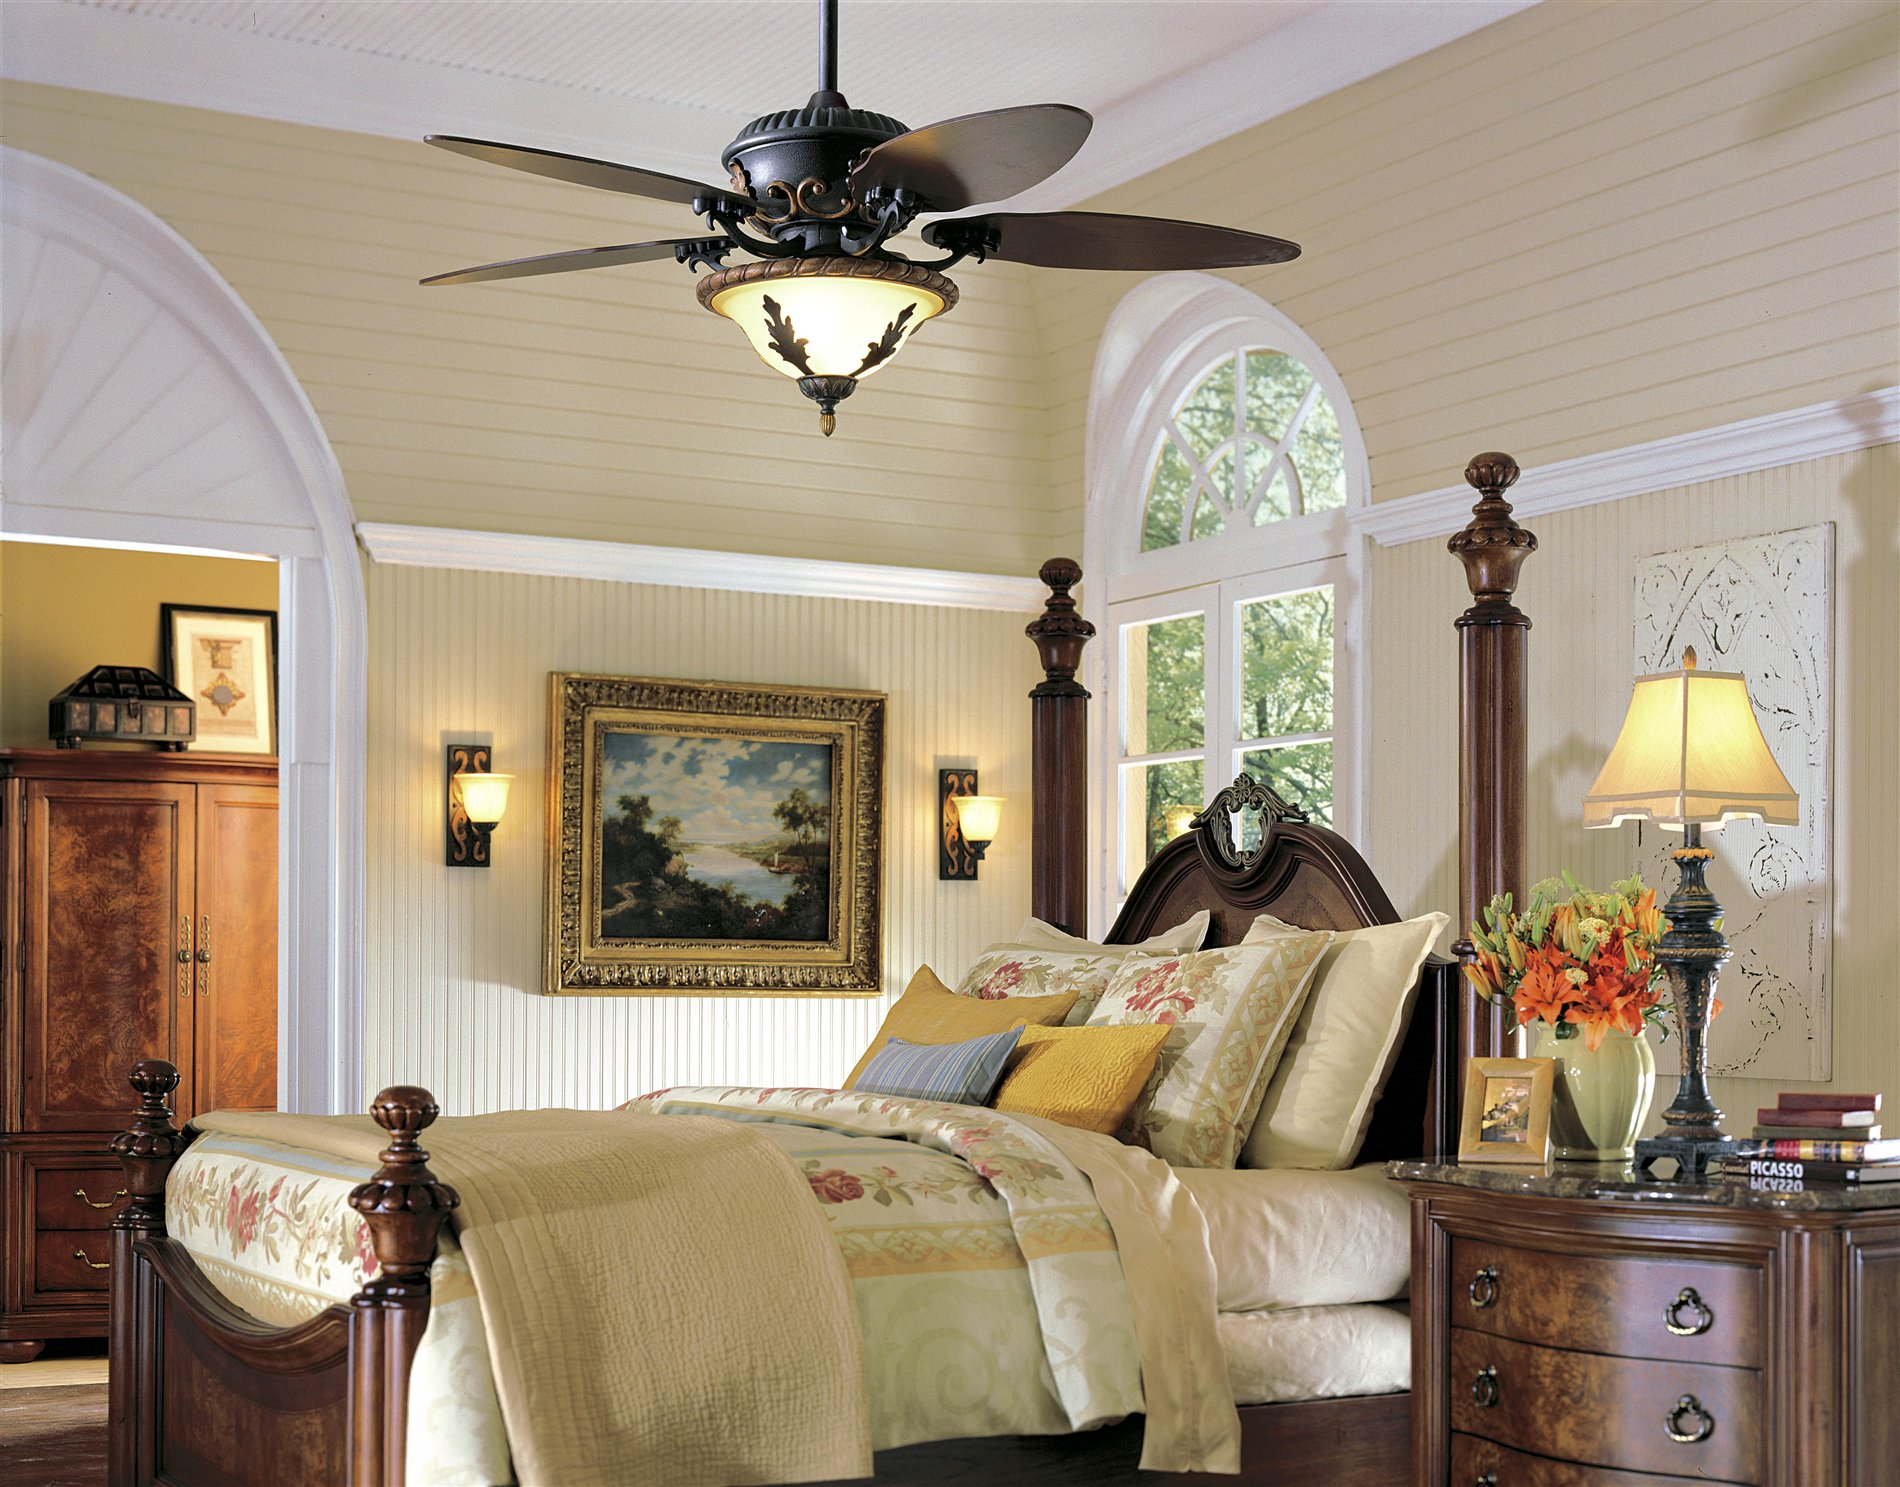 Create a cooling effect with Ceiling fan - darbylanefurniture.com